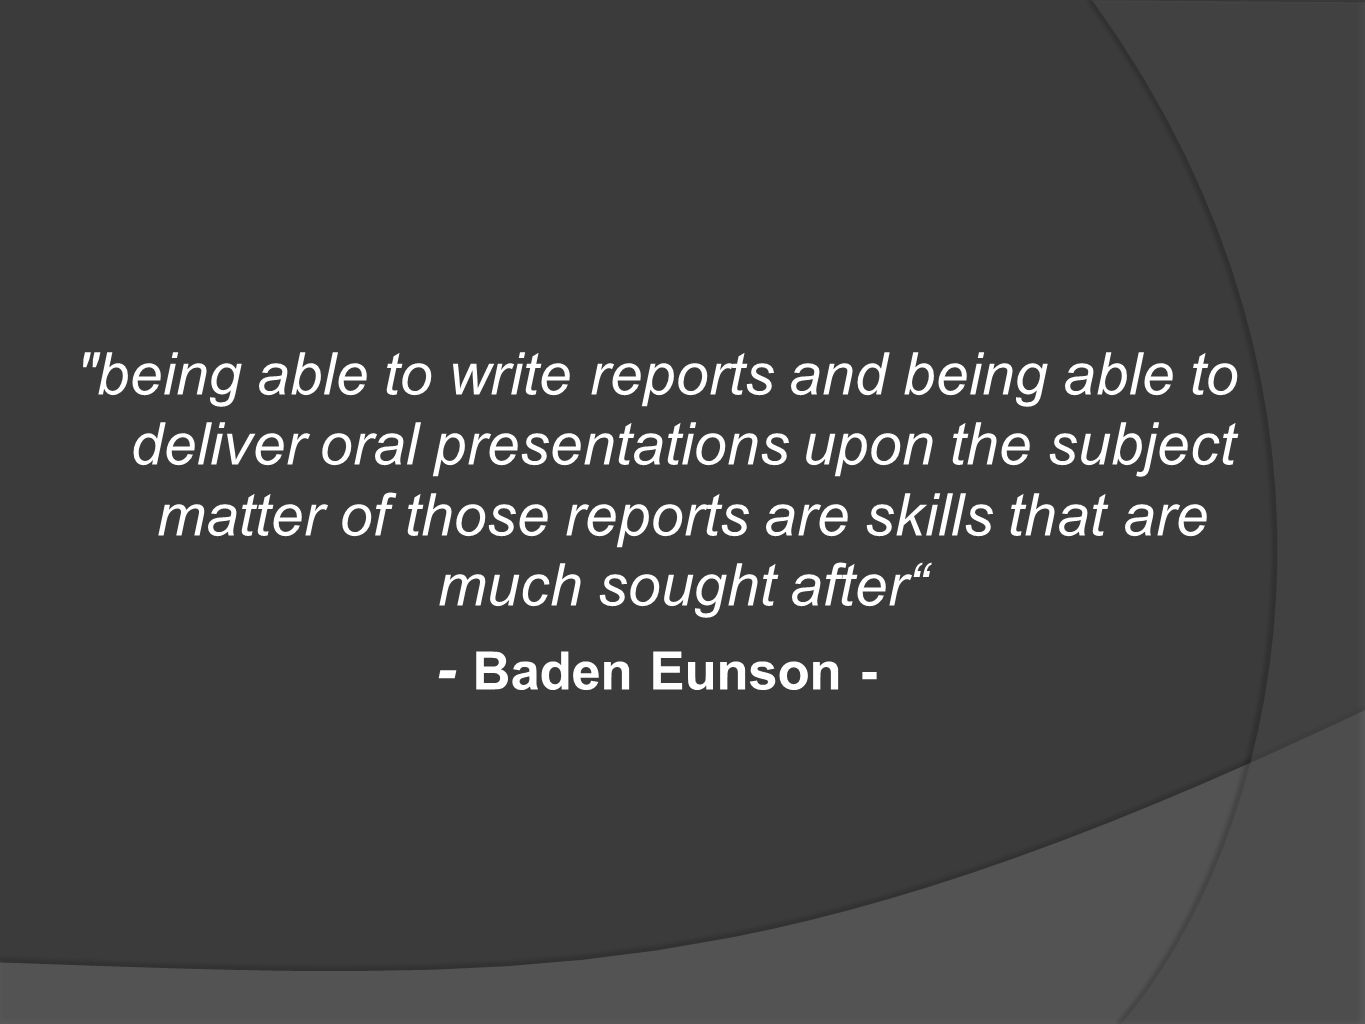 being able to write reports and being able to deliver oral presentations upon the subject matter of those reports are skills that are much sought after